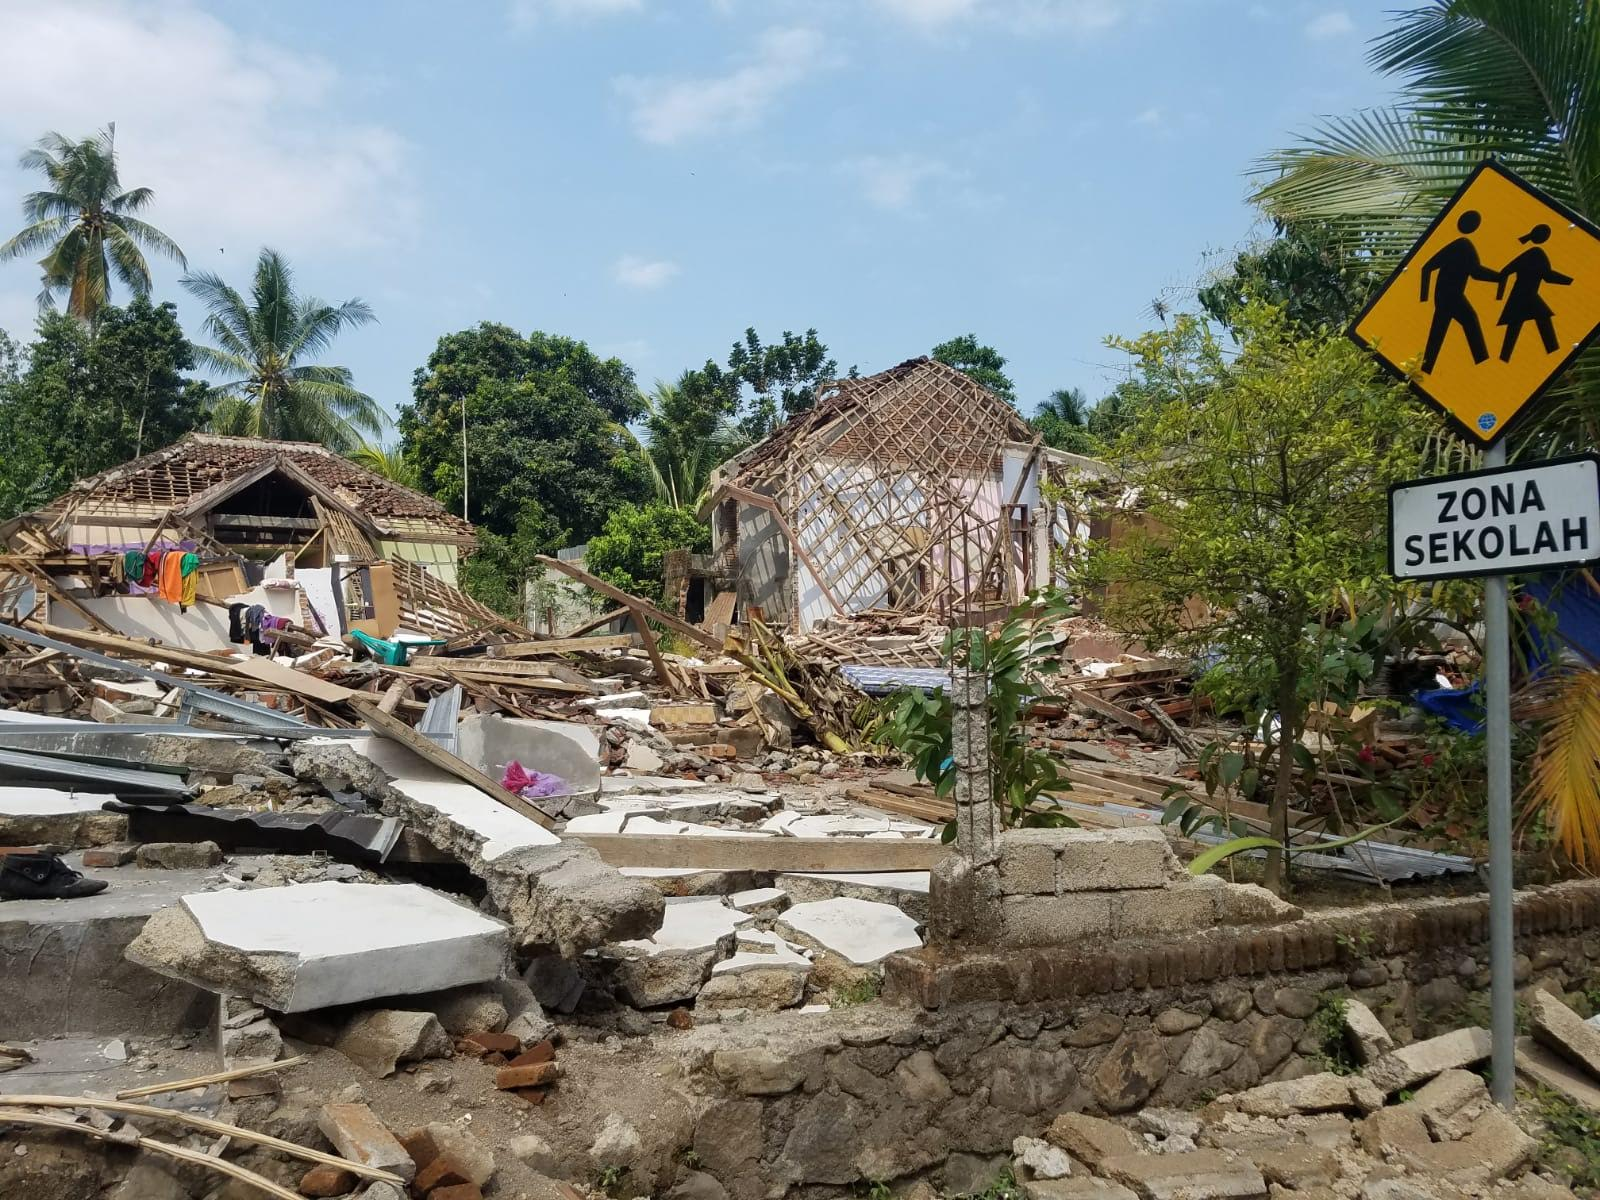 Collapsed buildings and infrastructure reveal the devastation caused by the 6.9-magnitude earthquake that rocked the Indonesian island of Lombok on August 5, 2018. (Gordon Wilcock/Direct Relief)